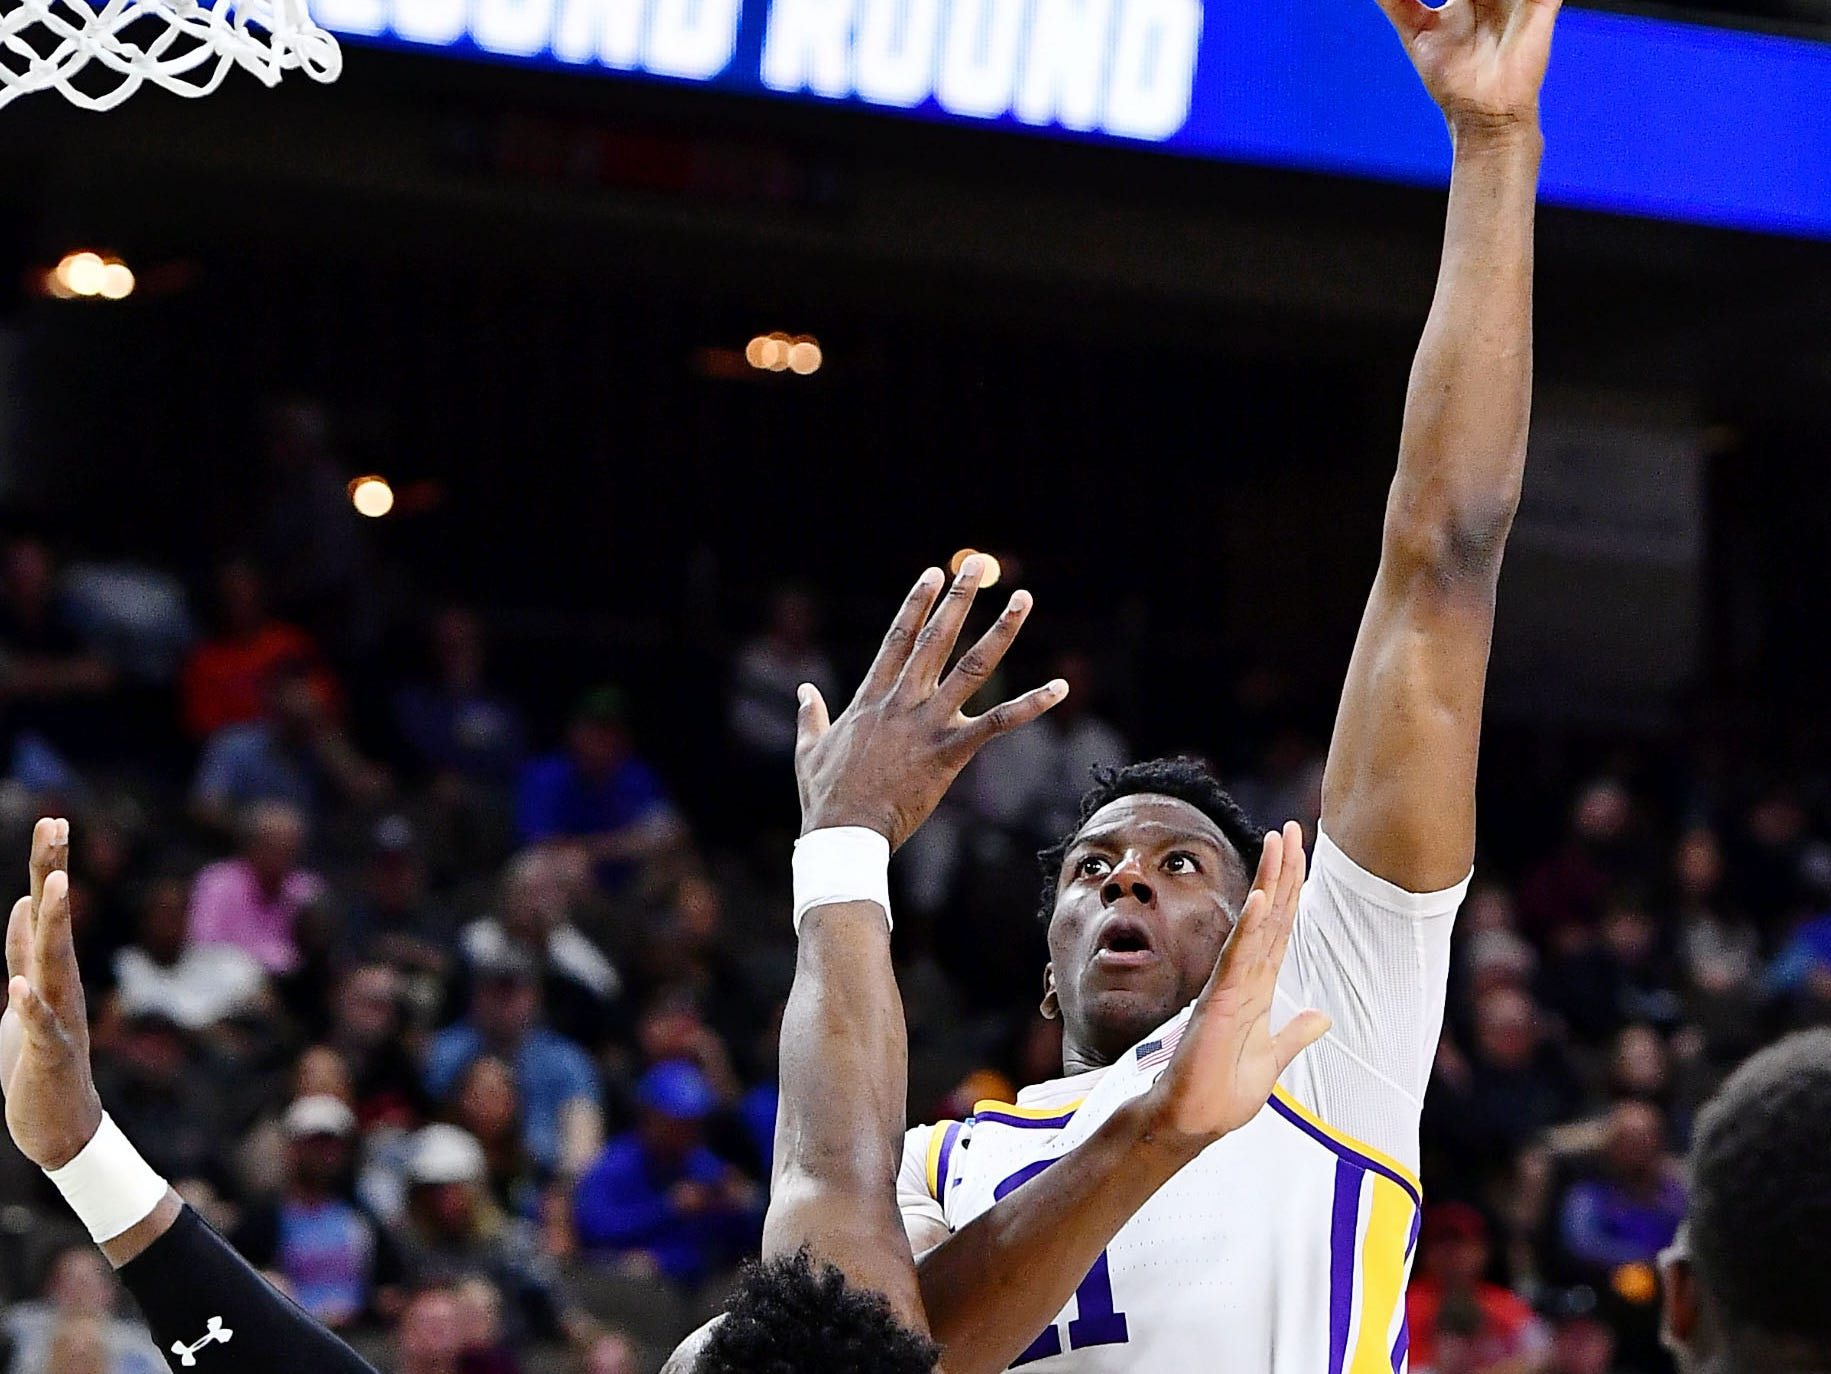 Mar 23, 2019; Jacksonville, FL, USA; LSU Tigers forward Kavell Bigby-Williams (11) shoots over the defense of Maryland Terrapins during the first half in the second round of the 2019 NCAA Tournament at Jacksonville Veterans Memorial Arena. Mandatory Credit: John David Mercer-USA TODAY Sports